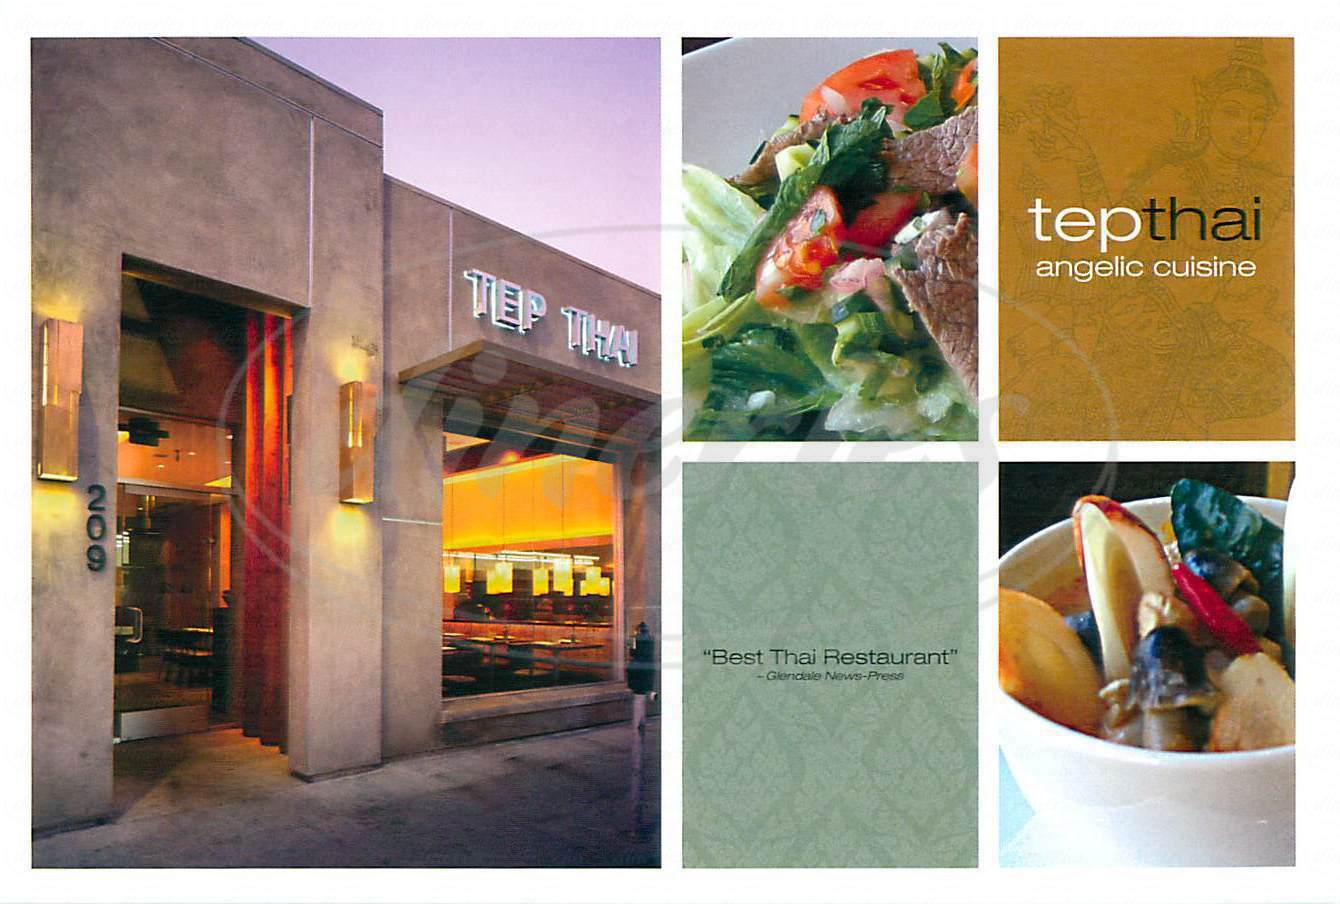 menu for Tep Thai